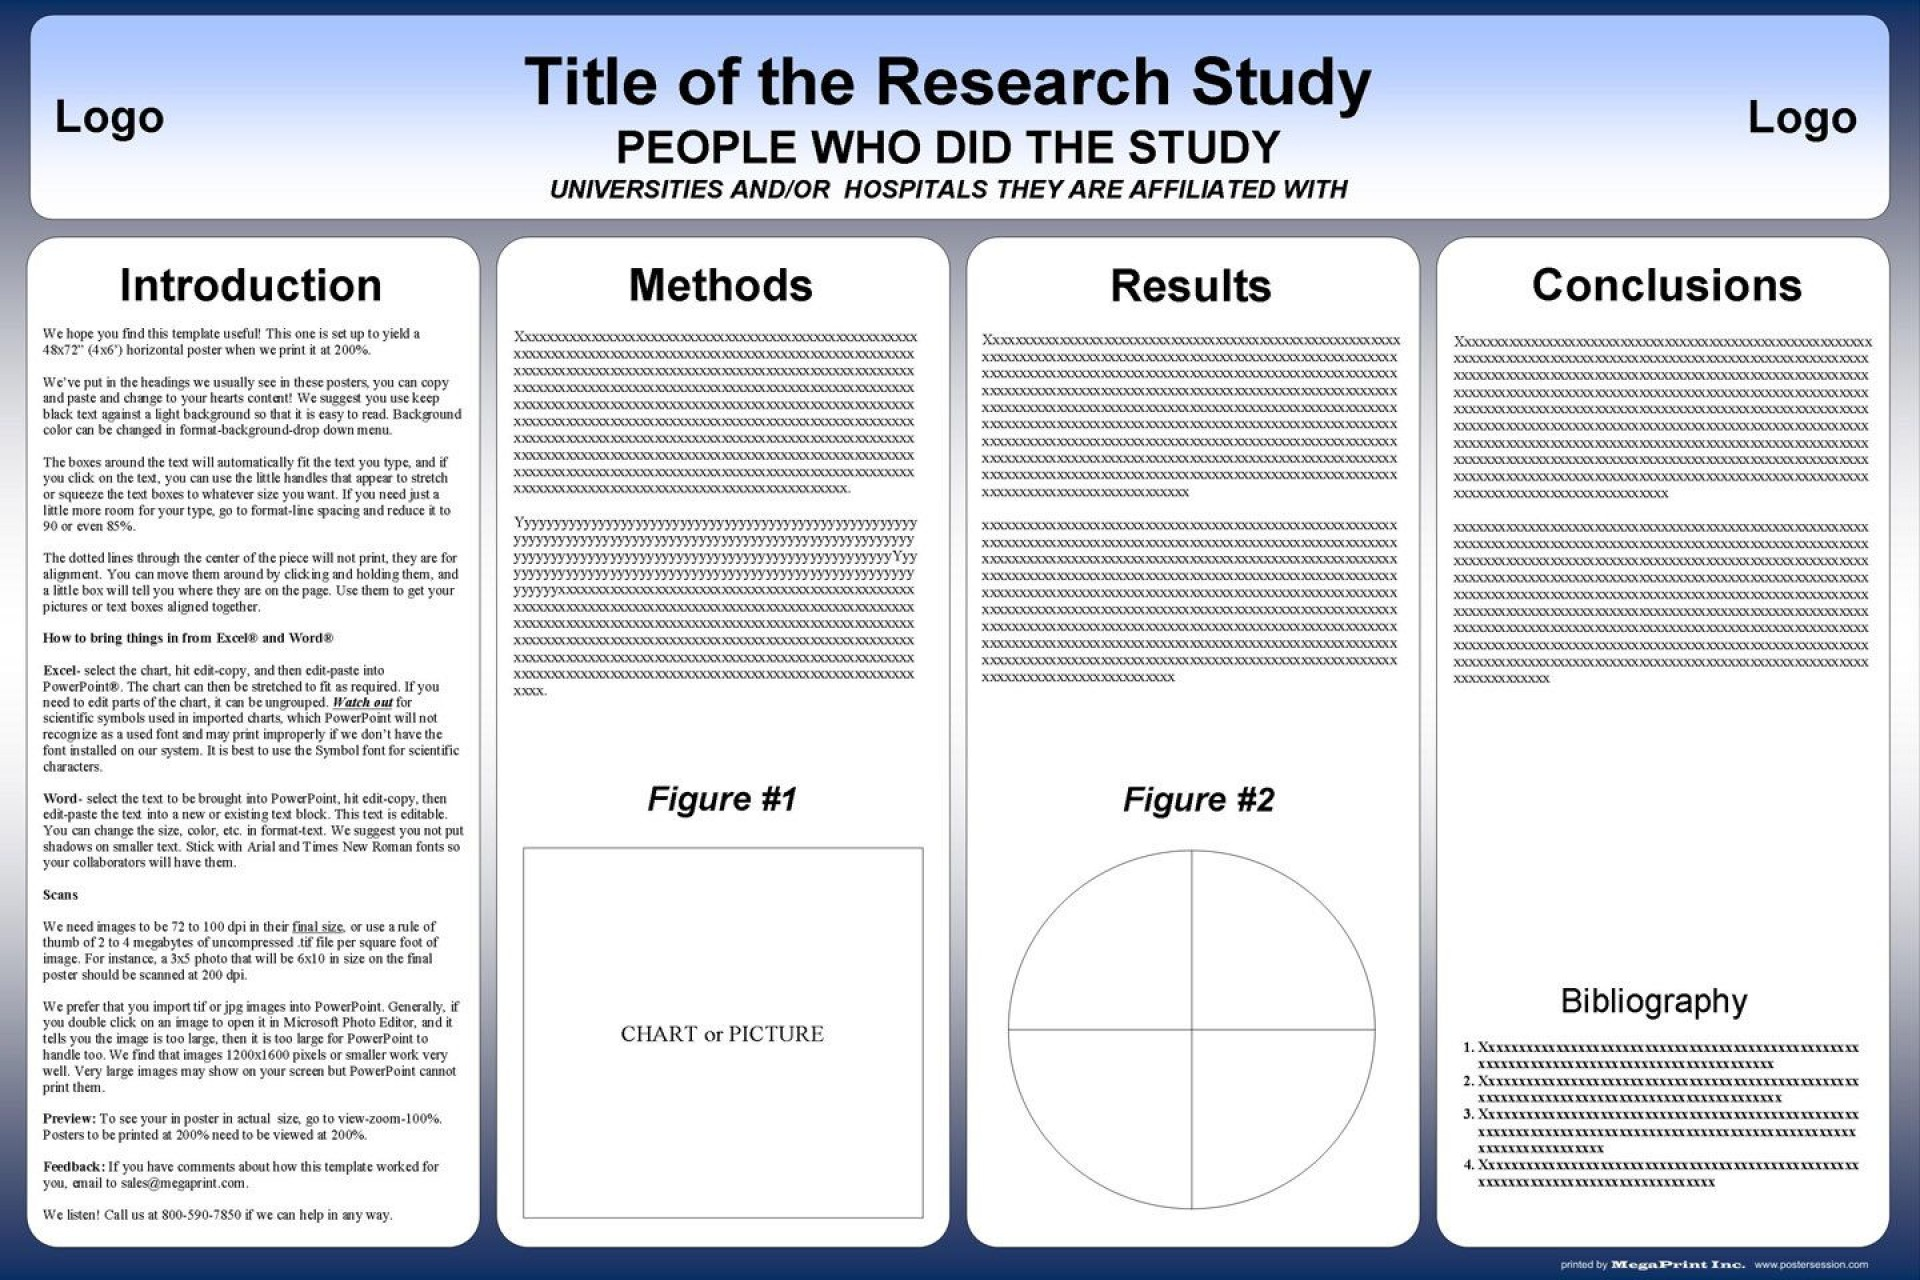 004 Incredible Scientific Poster Presentation Template Free Download High Definition 1920